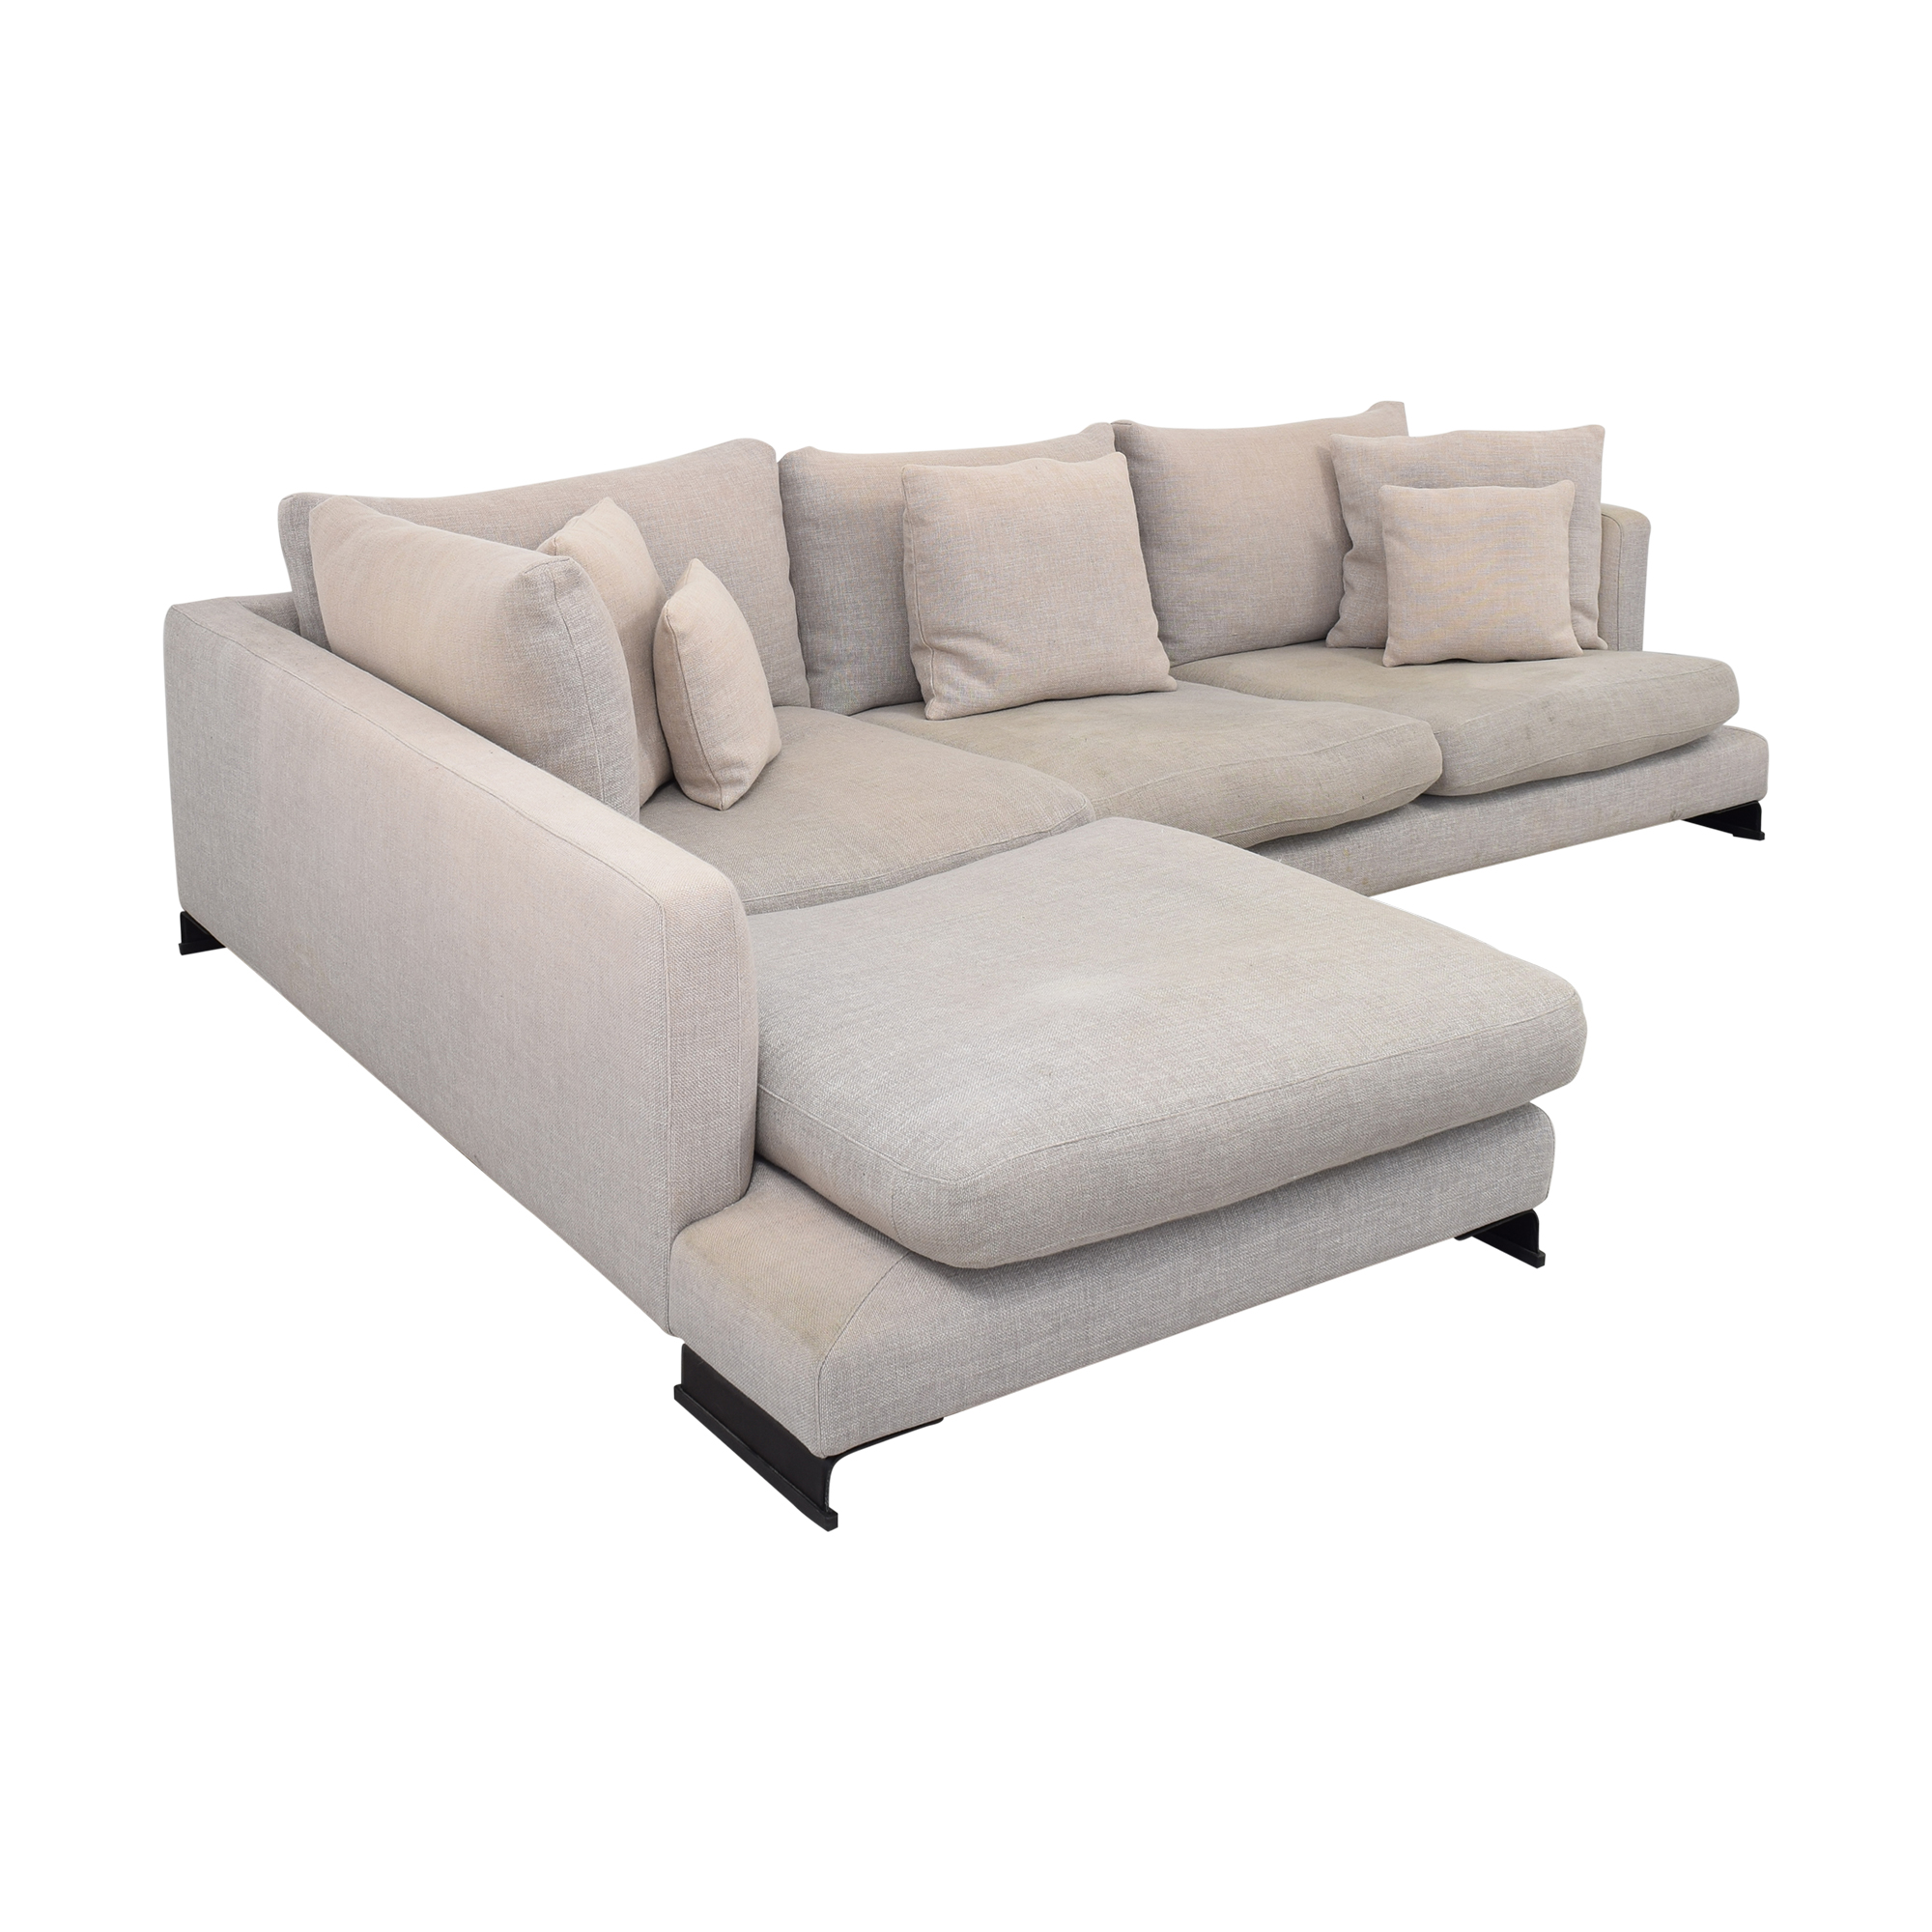 Camerich Camerich Lazy Time Sectional for sale